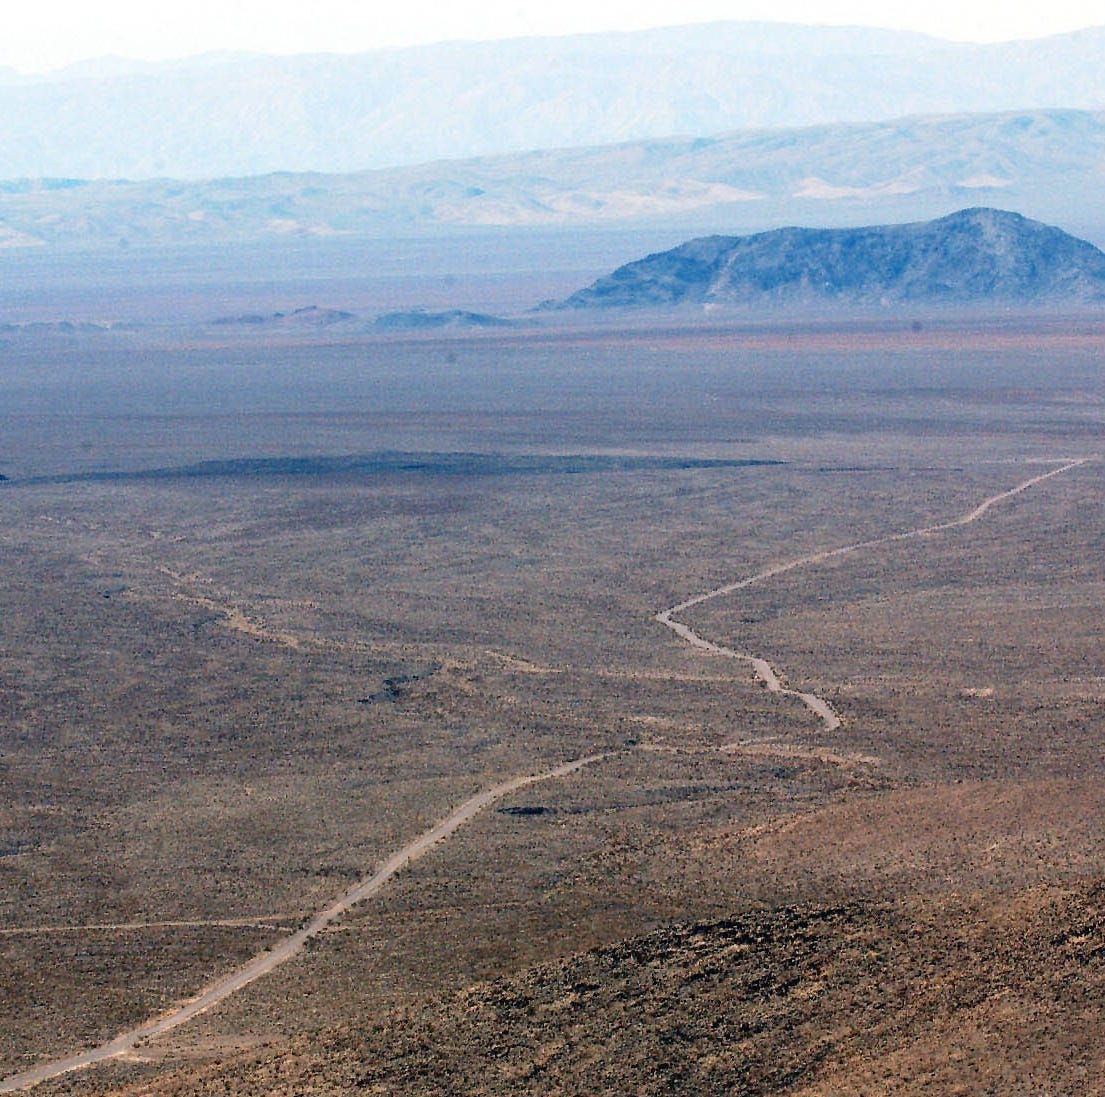 Funding fight to make Yucca Mountain nuclear waste site stalls in Washington